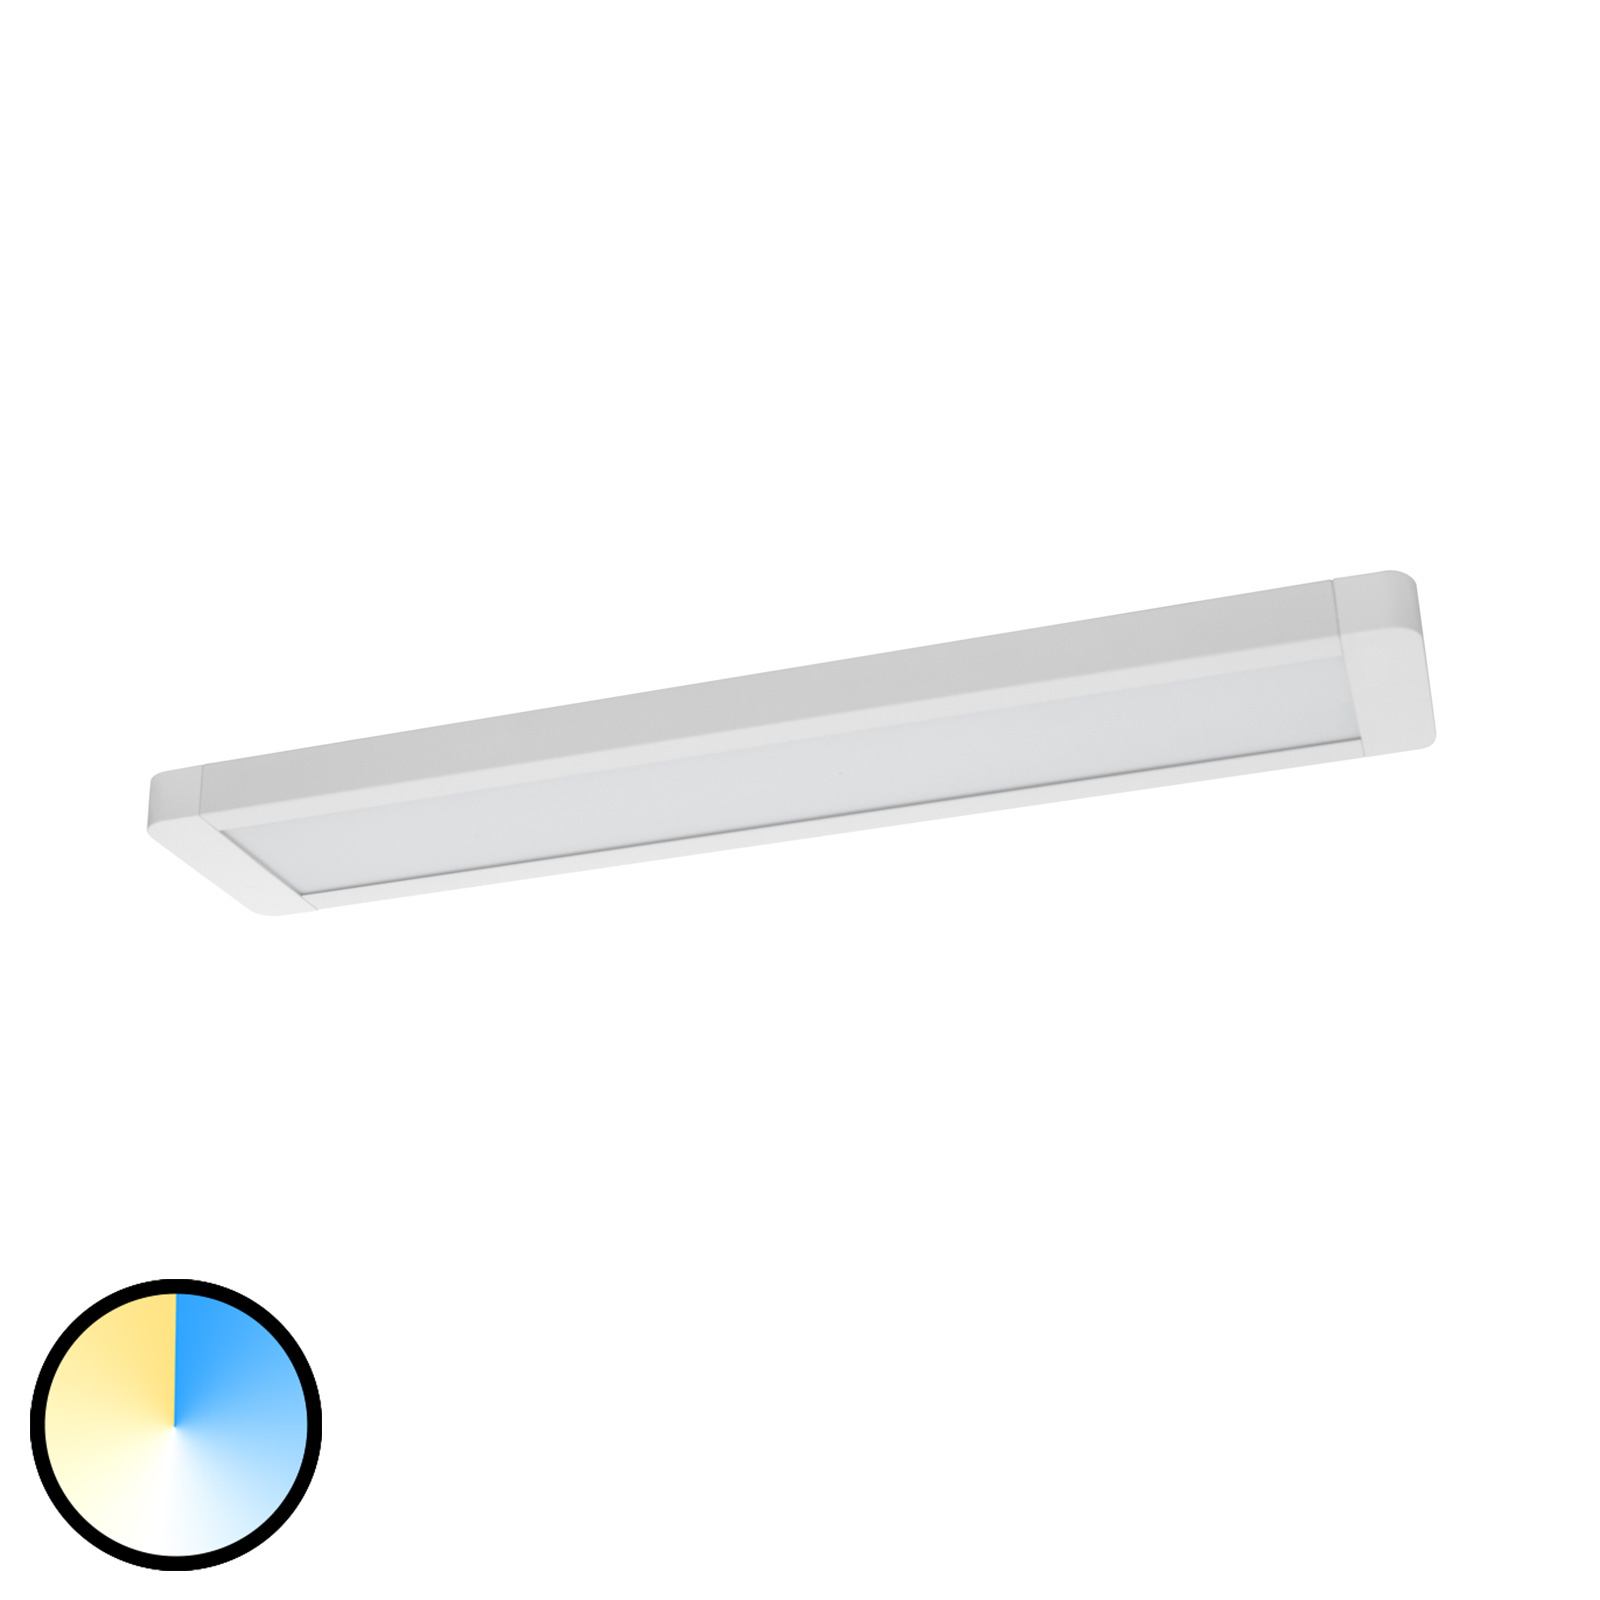 LEDVANCE Office Line lampa sufitowa LED 60 cm